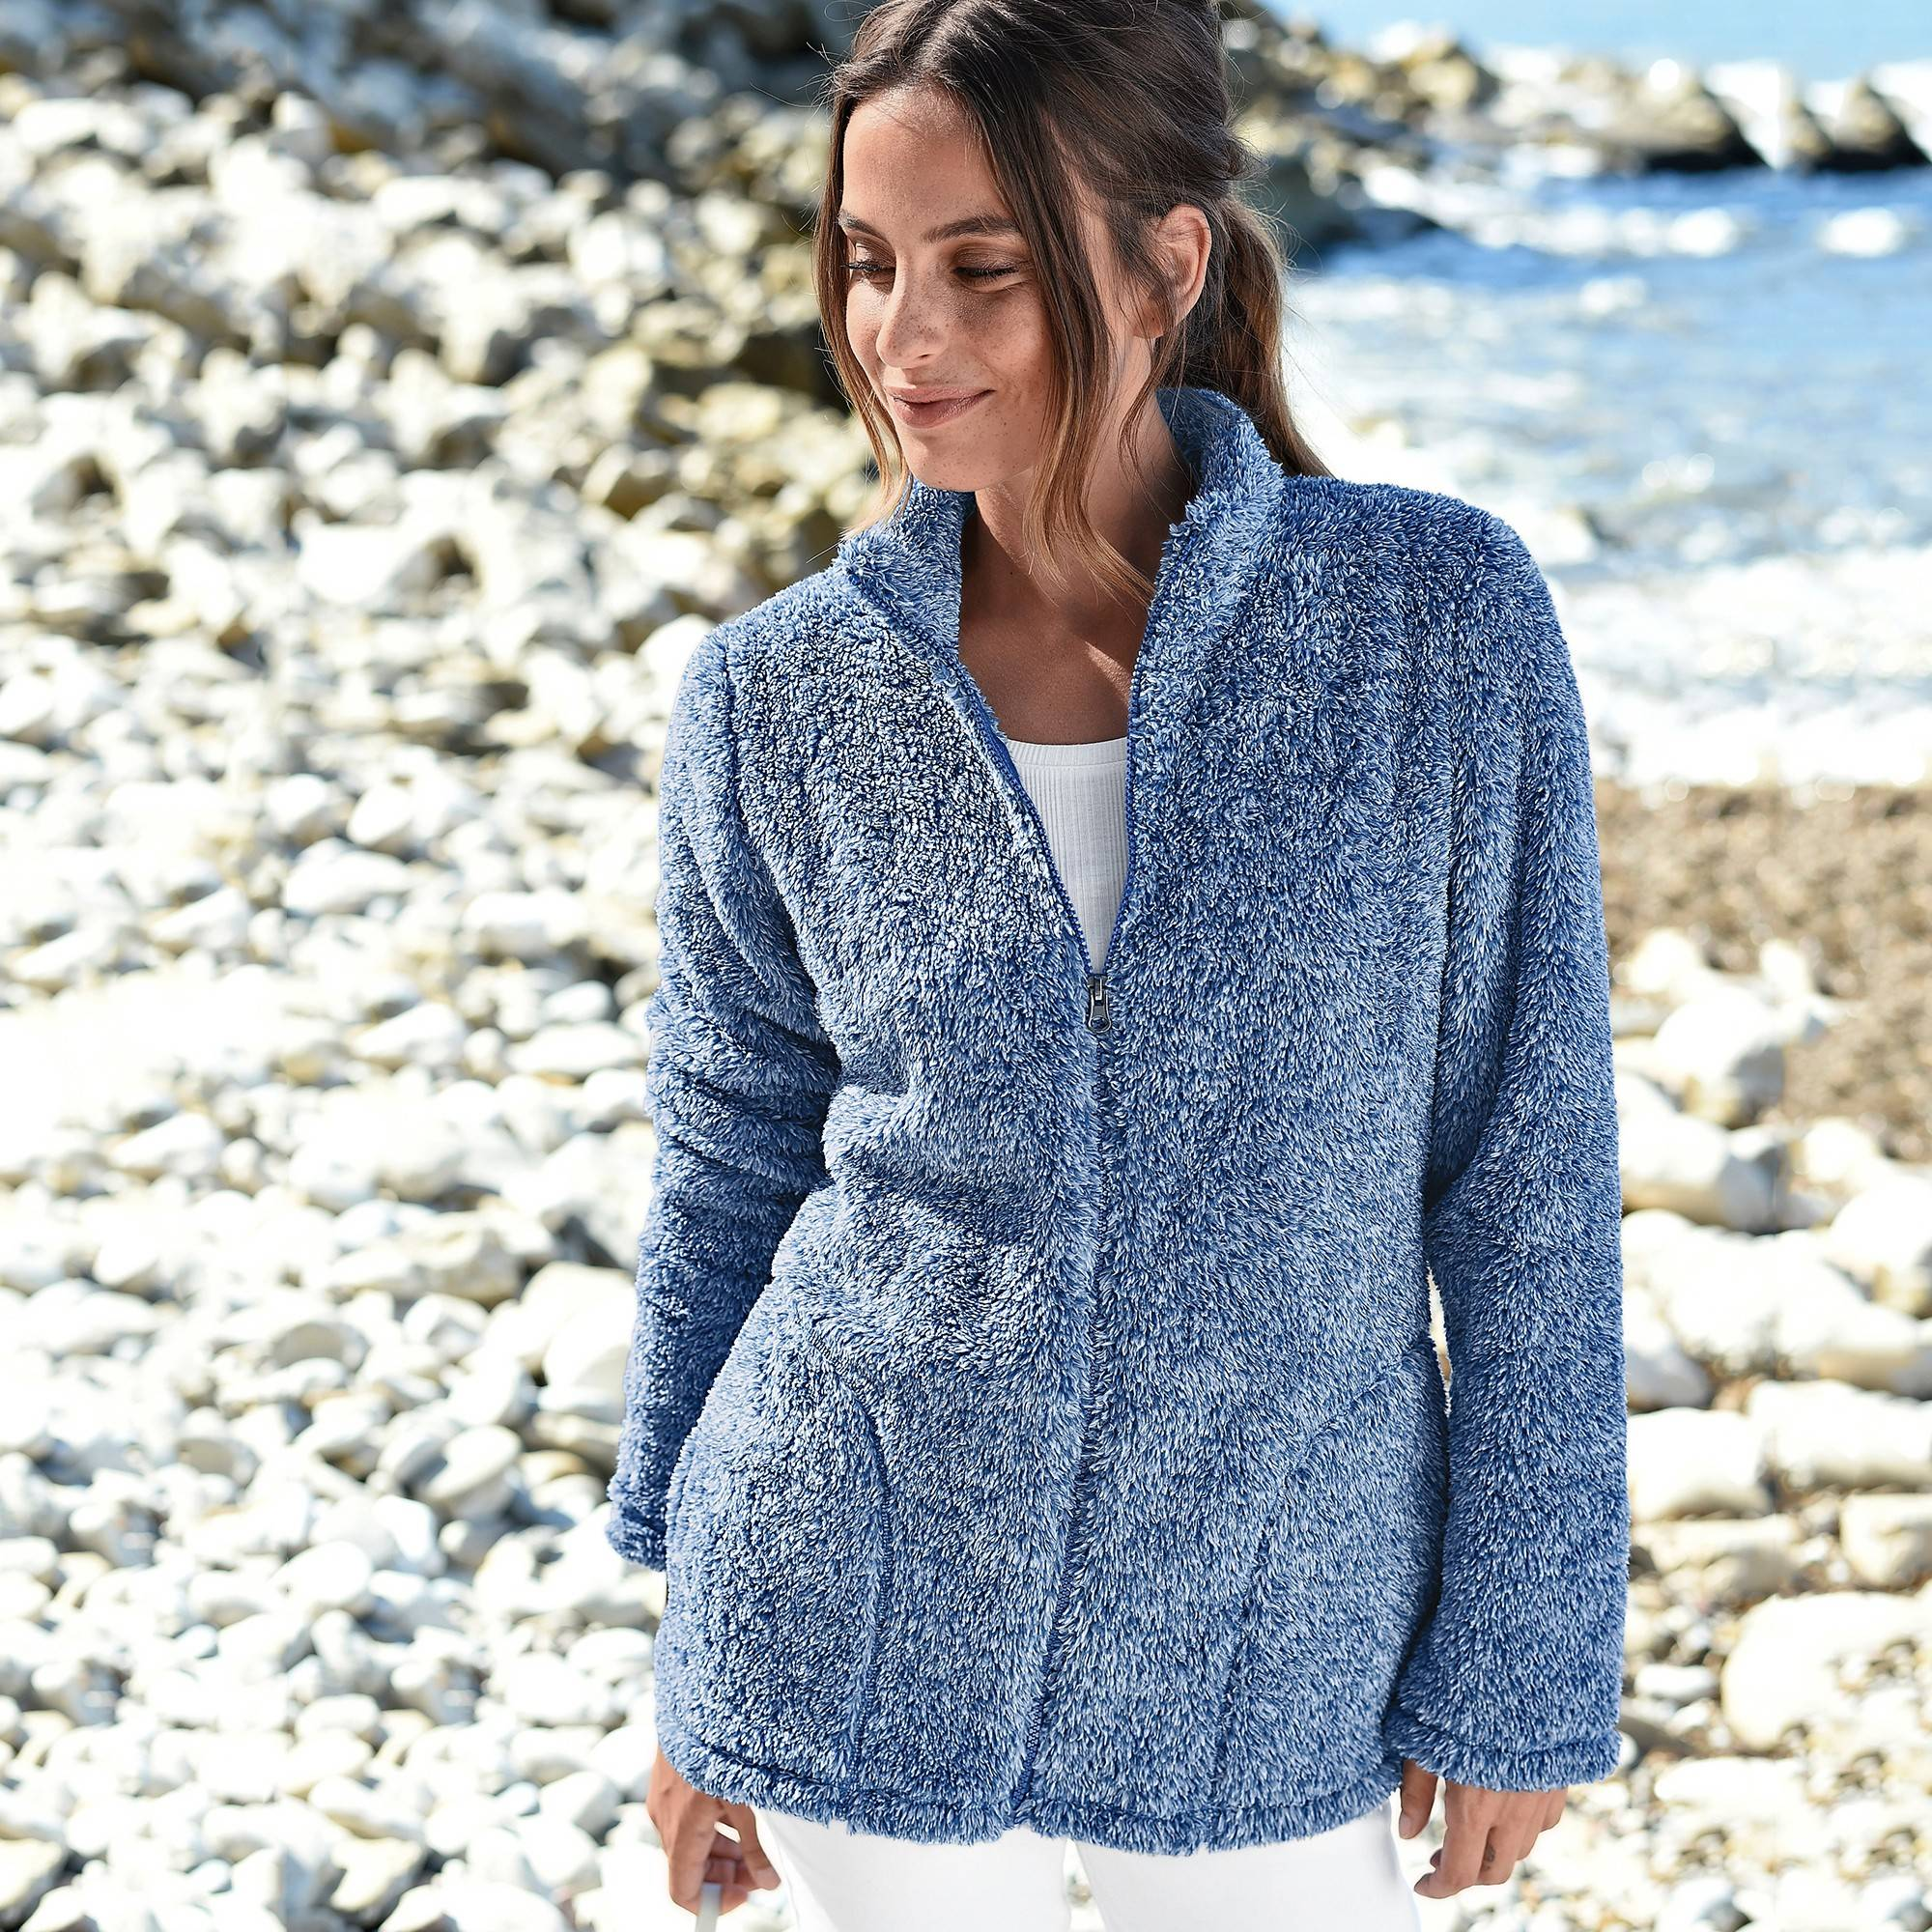 Casual Collection Veste maille peluche - Bleu - Taille : 54 - Blancheporte